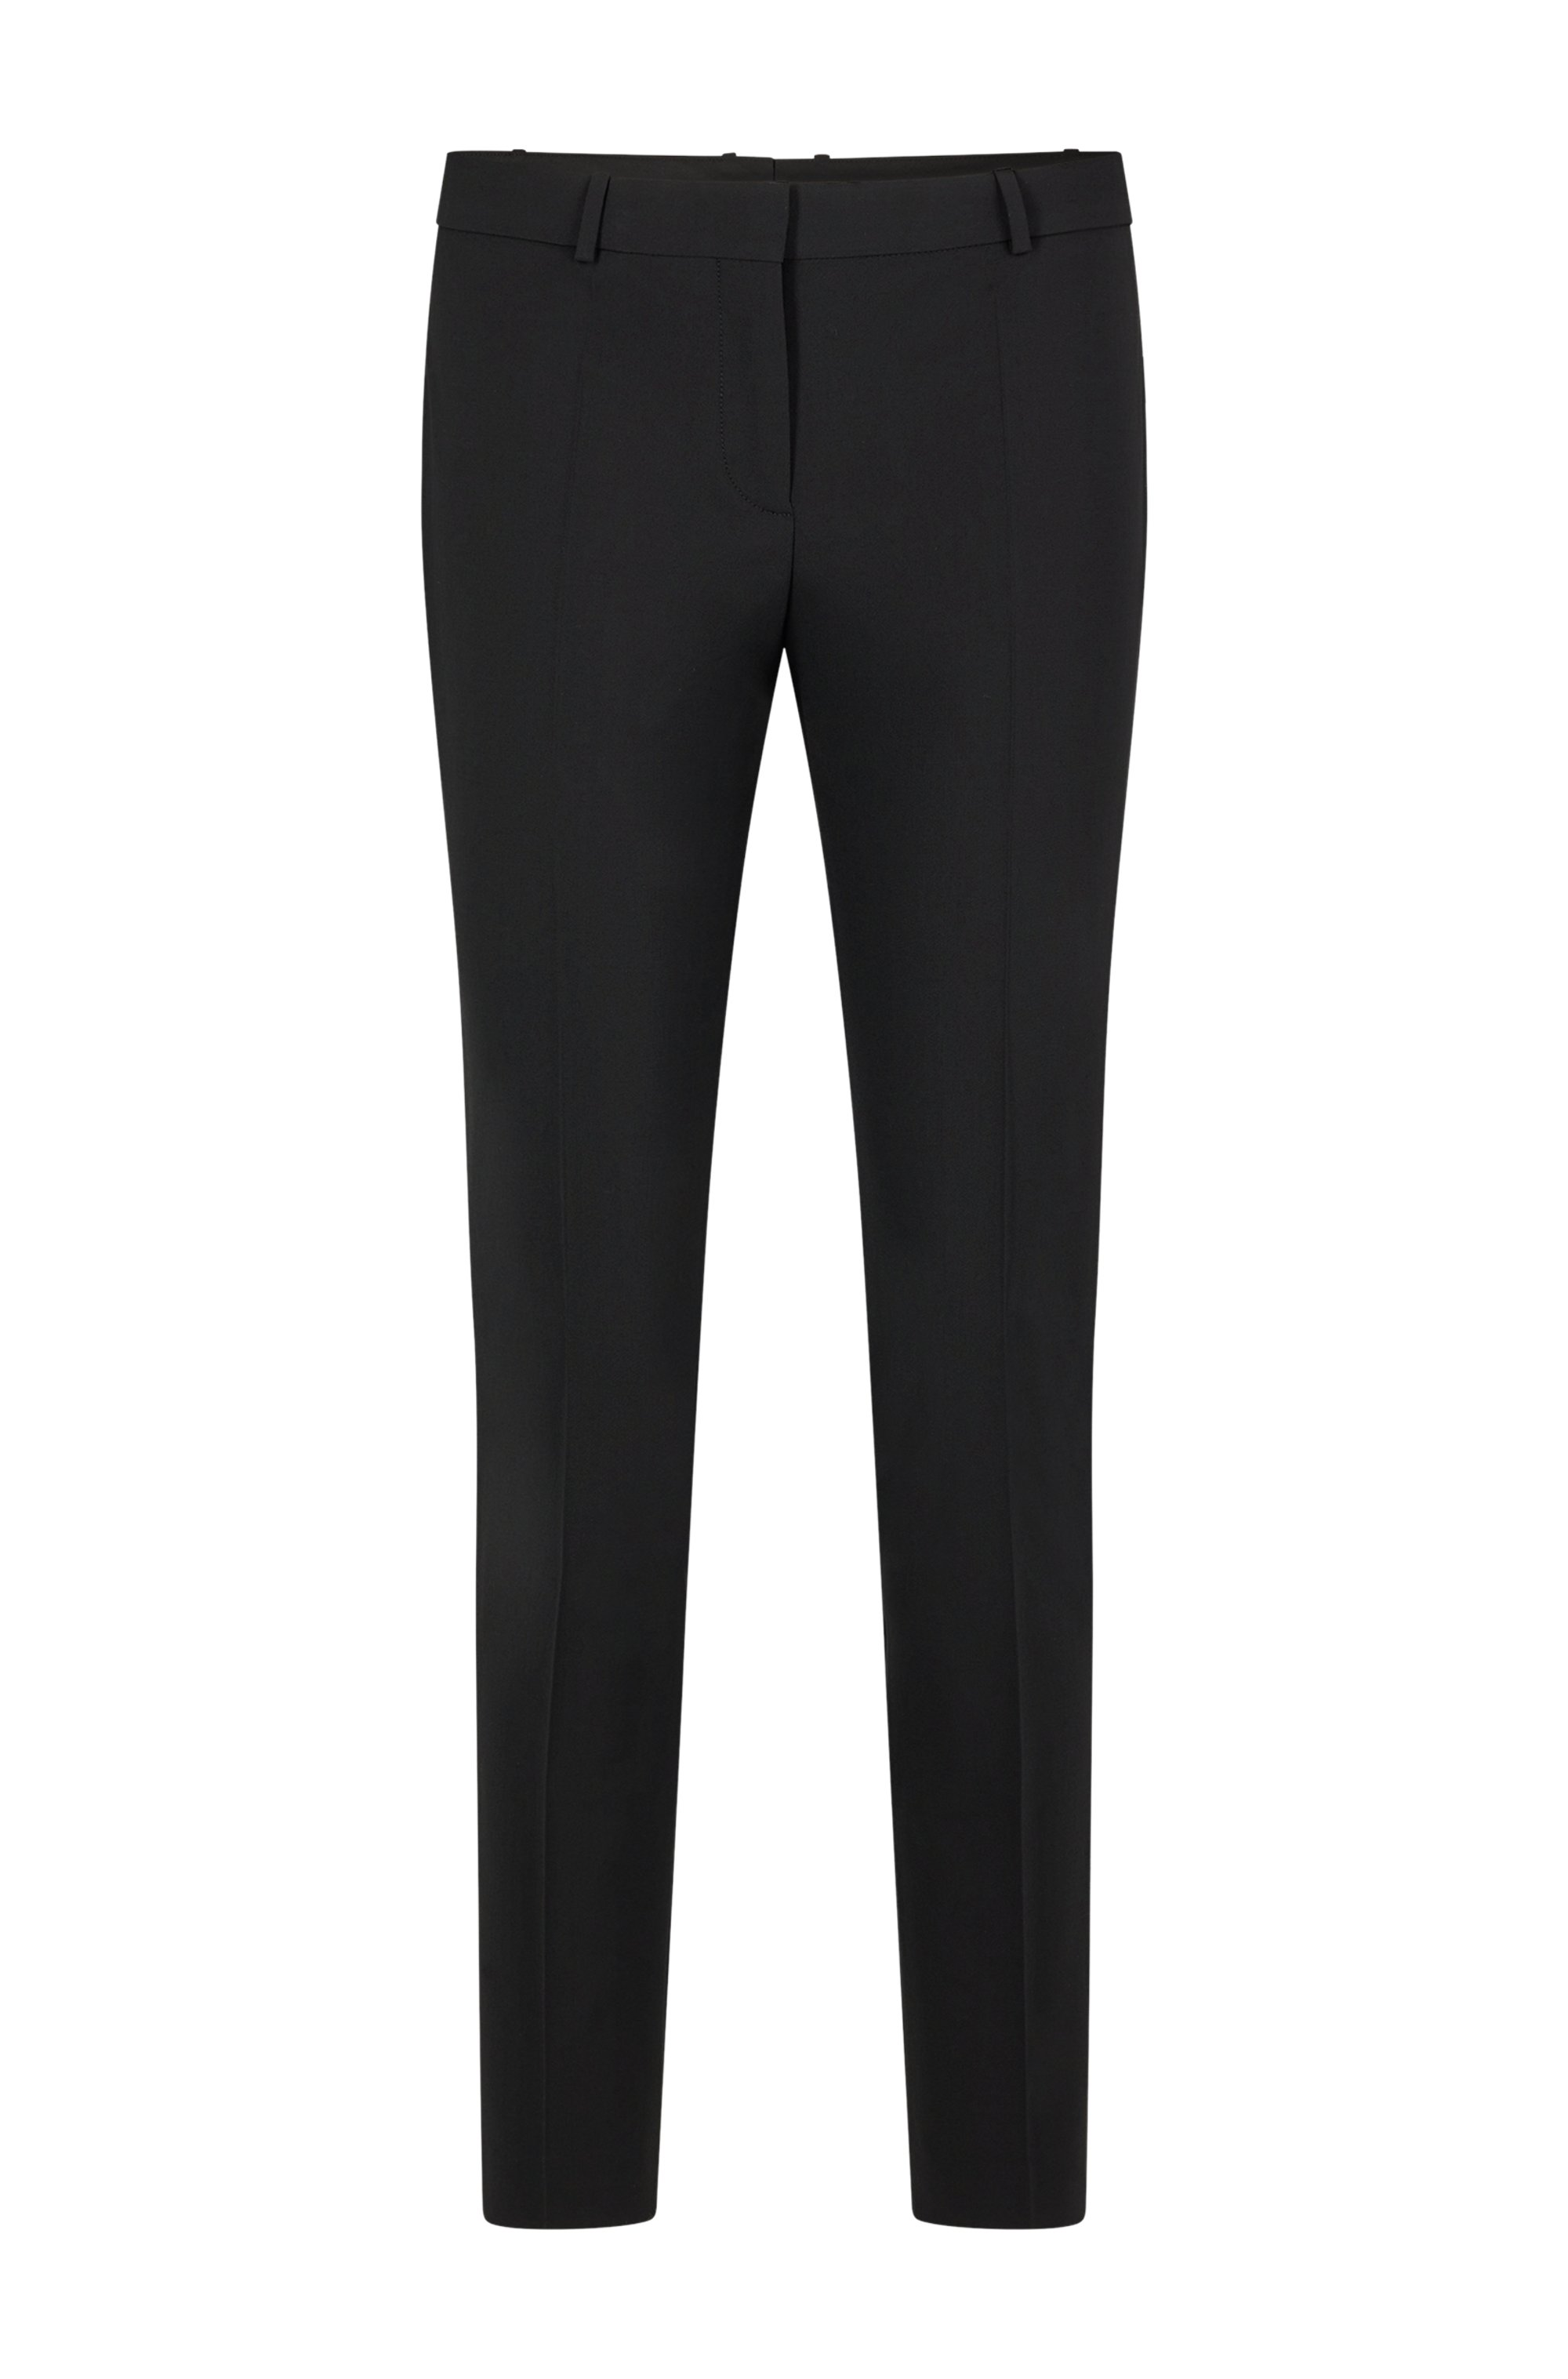 Cropped regular-fit trousers in Italian stretch virgin wool, Black